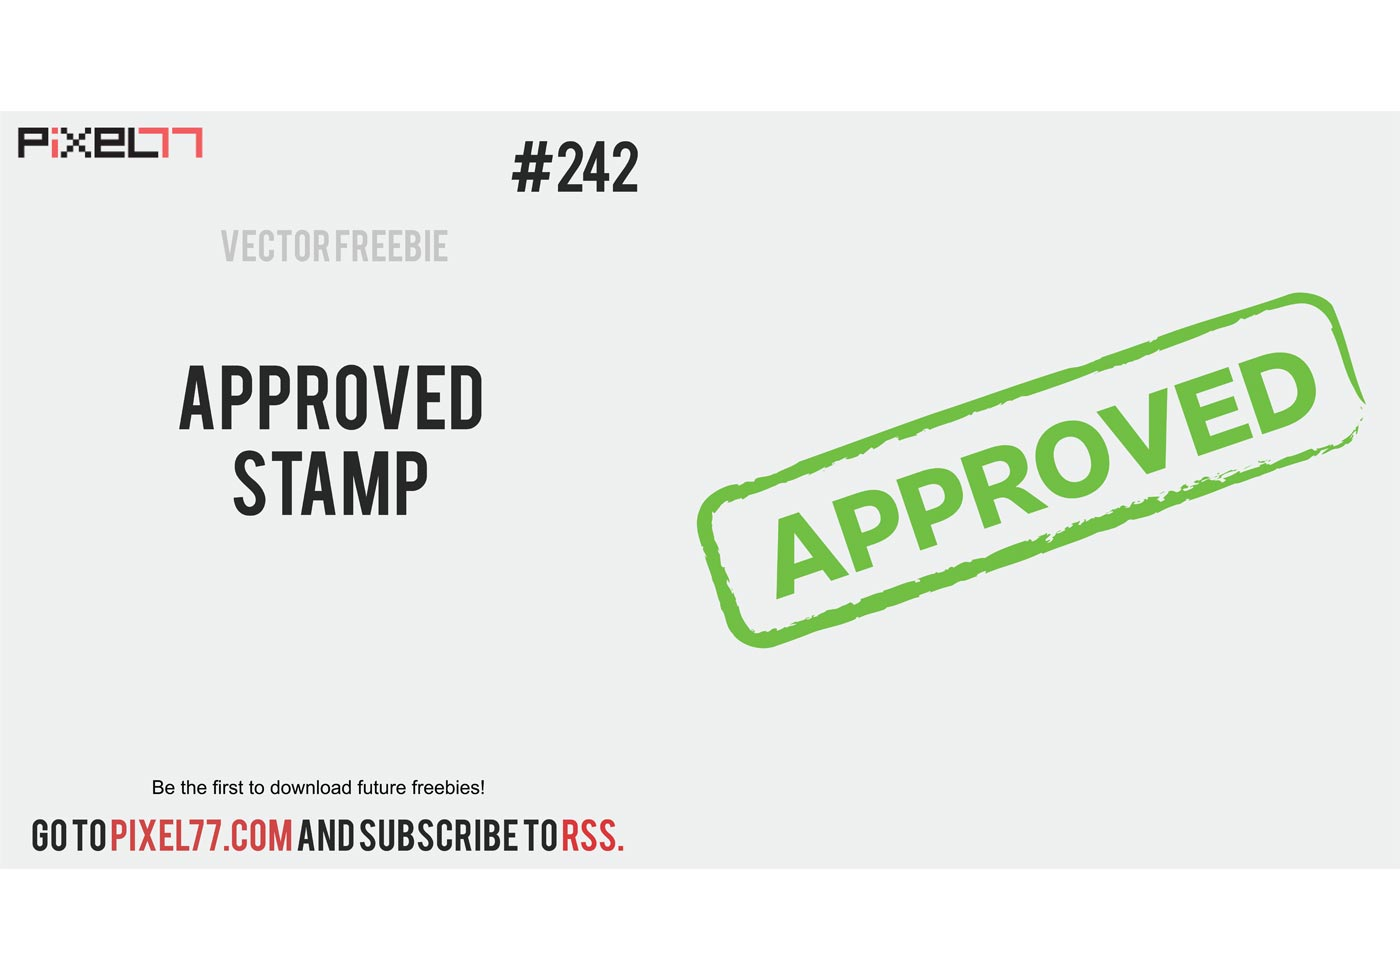 free vector of the day  242  approved stamp